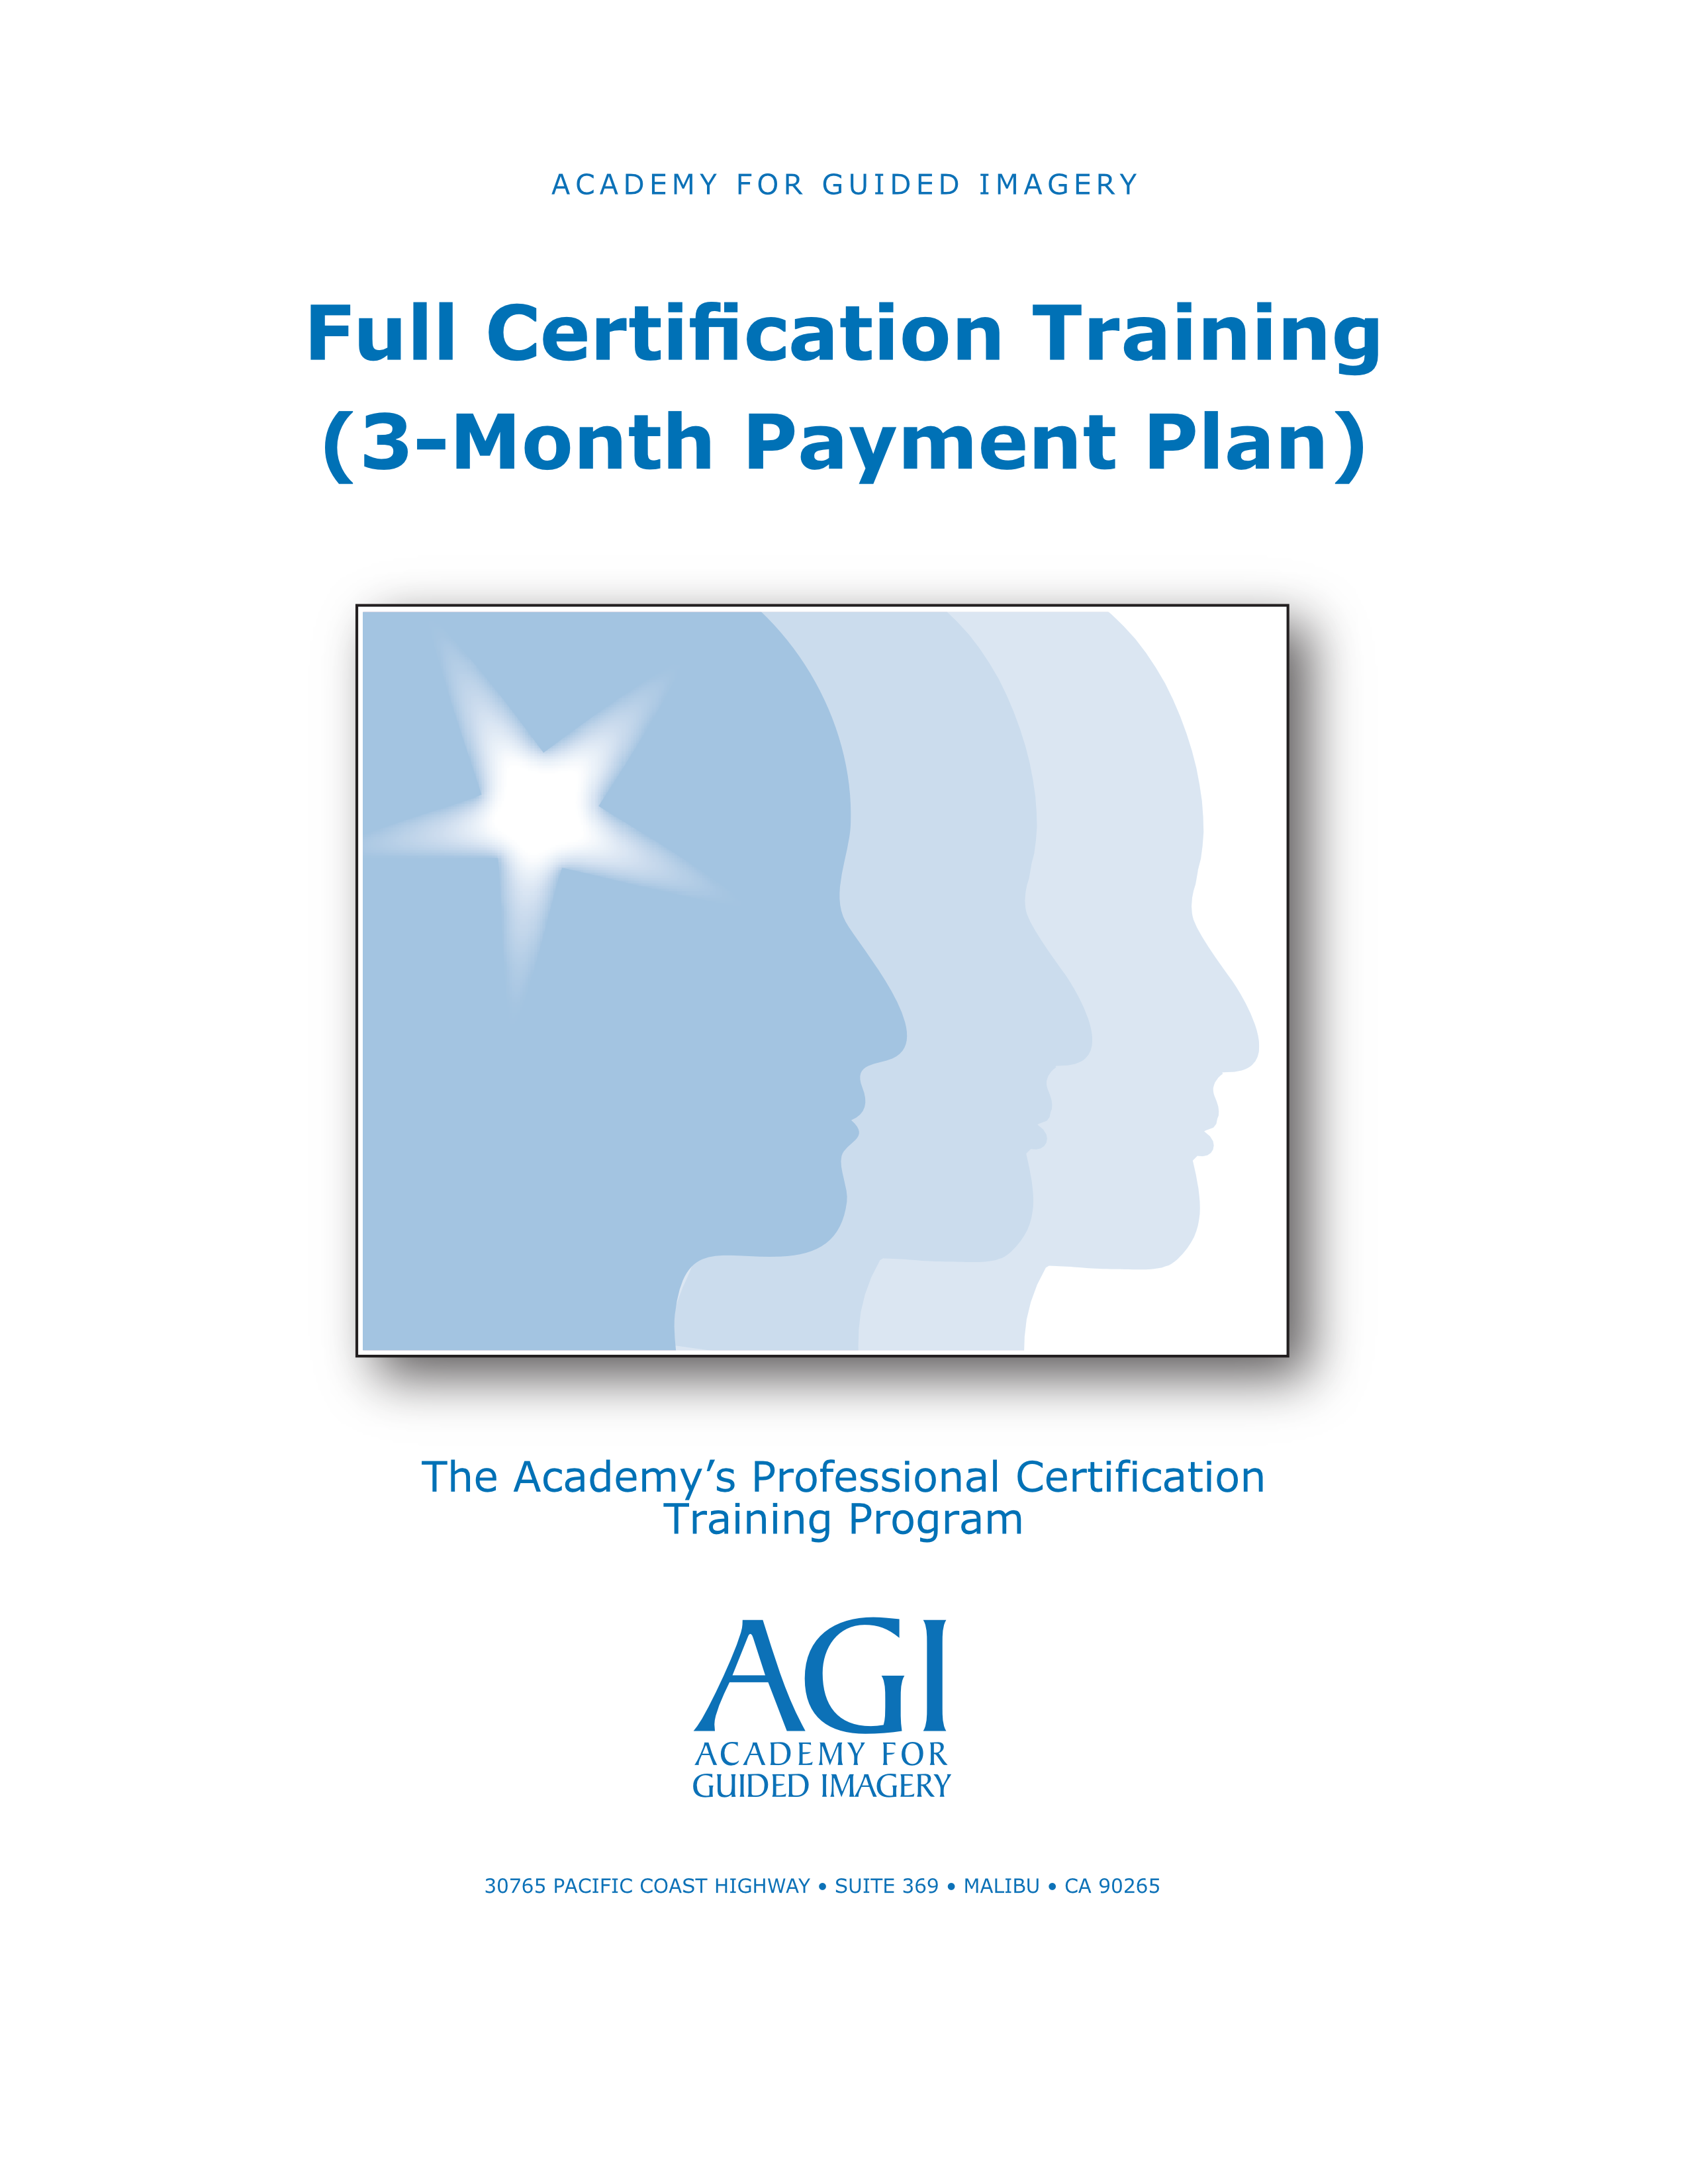 Full Certification Training (3-Month Payment Plan)